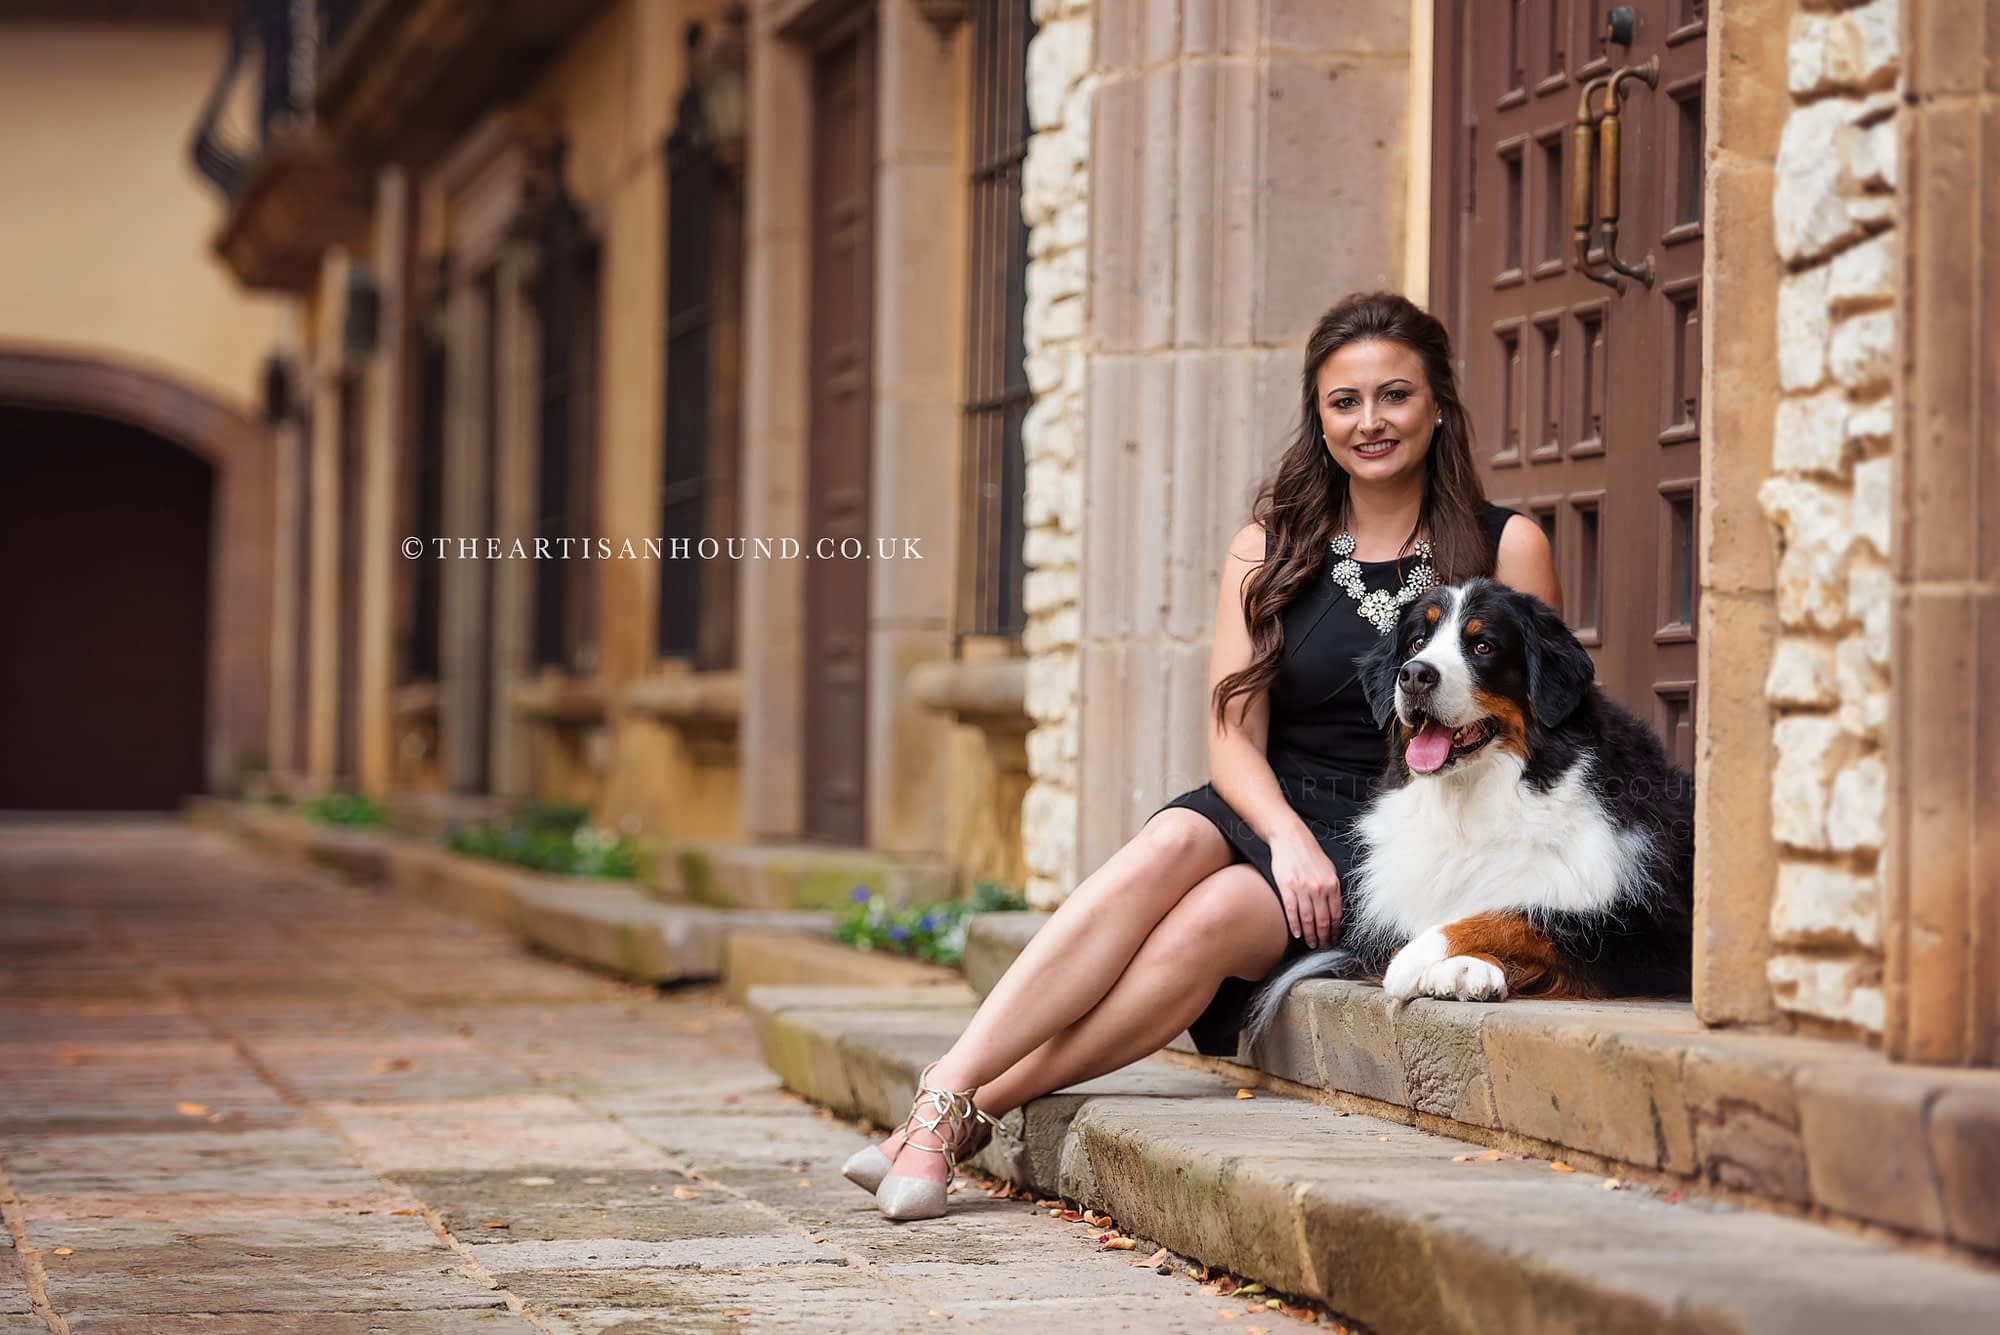 Berner dog and woman sitting on steps by door